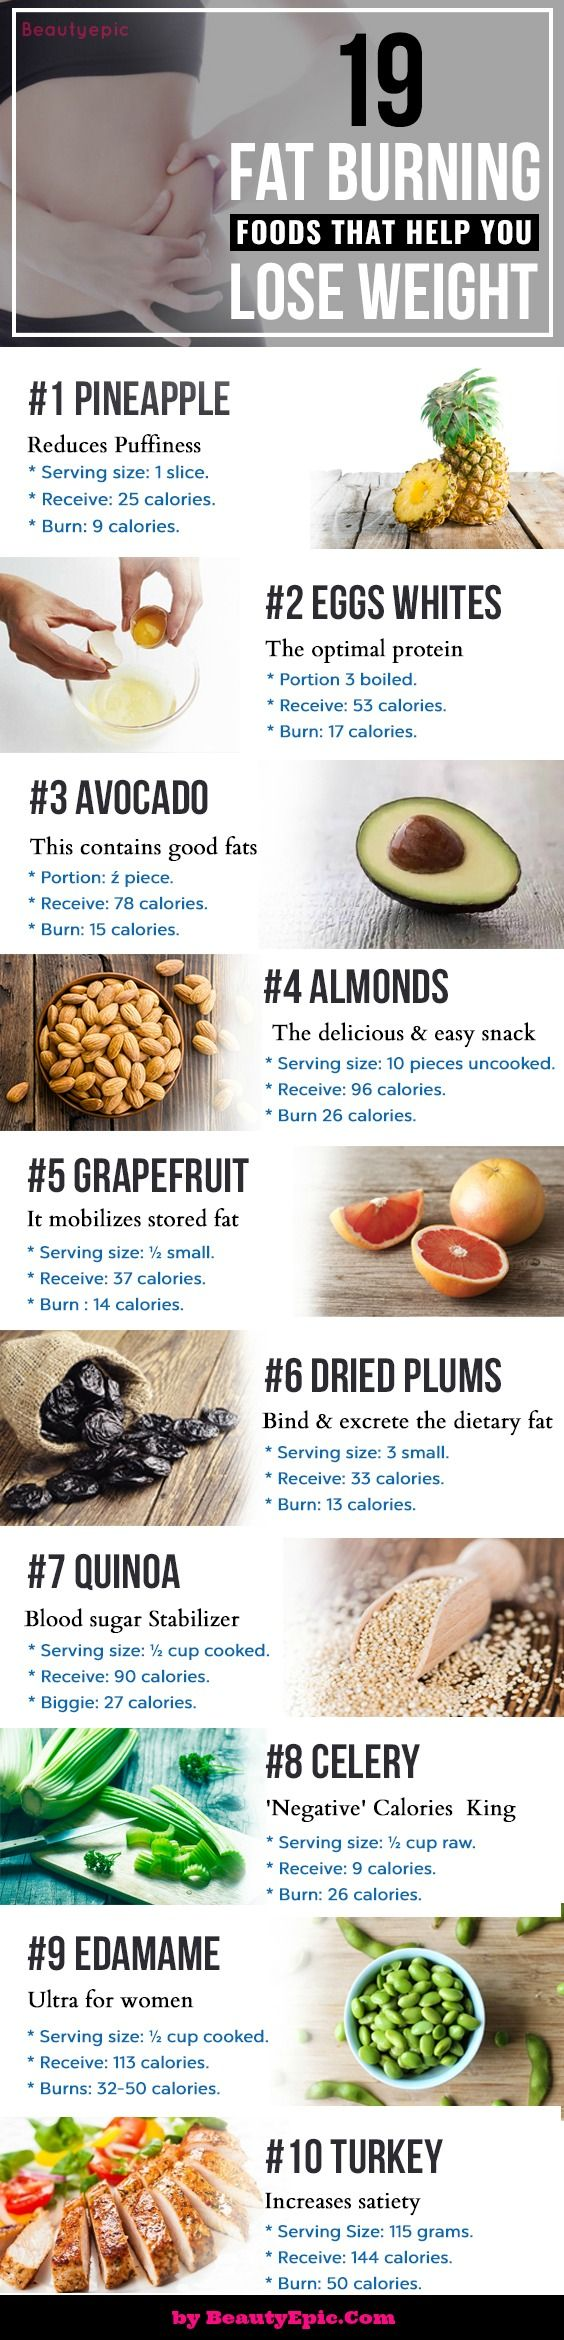 19 Super Foods That Burn Fat & Help You Lose Weight - Beauty Epic                                                                                                                                                                                 More